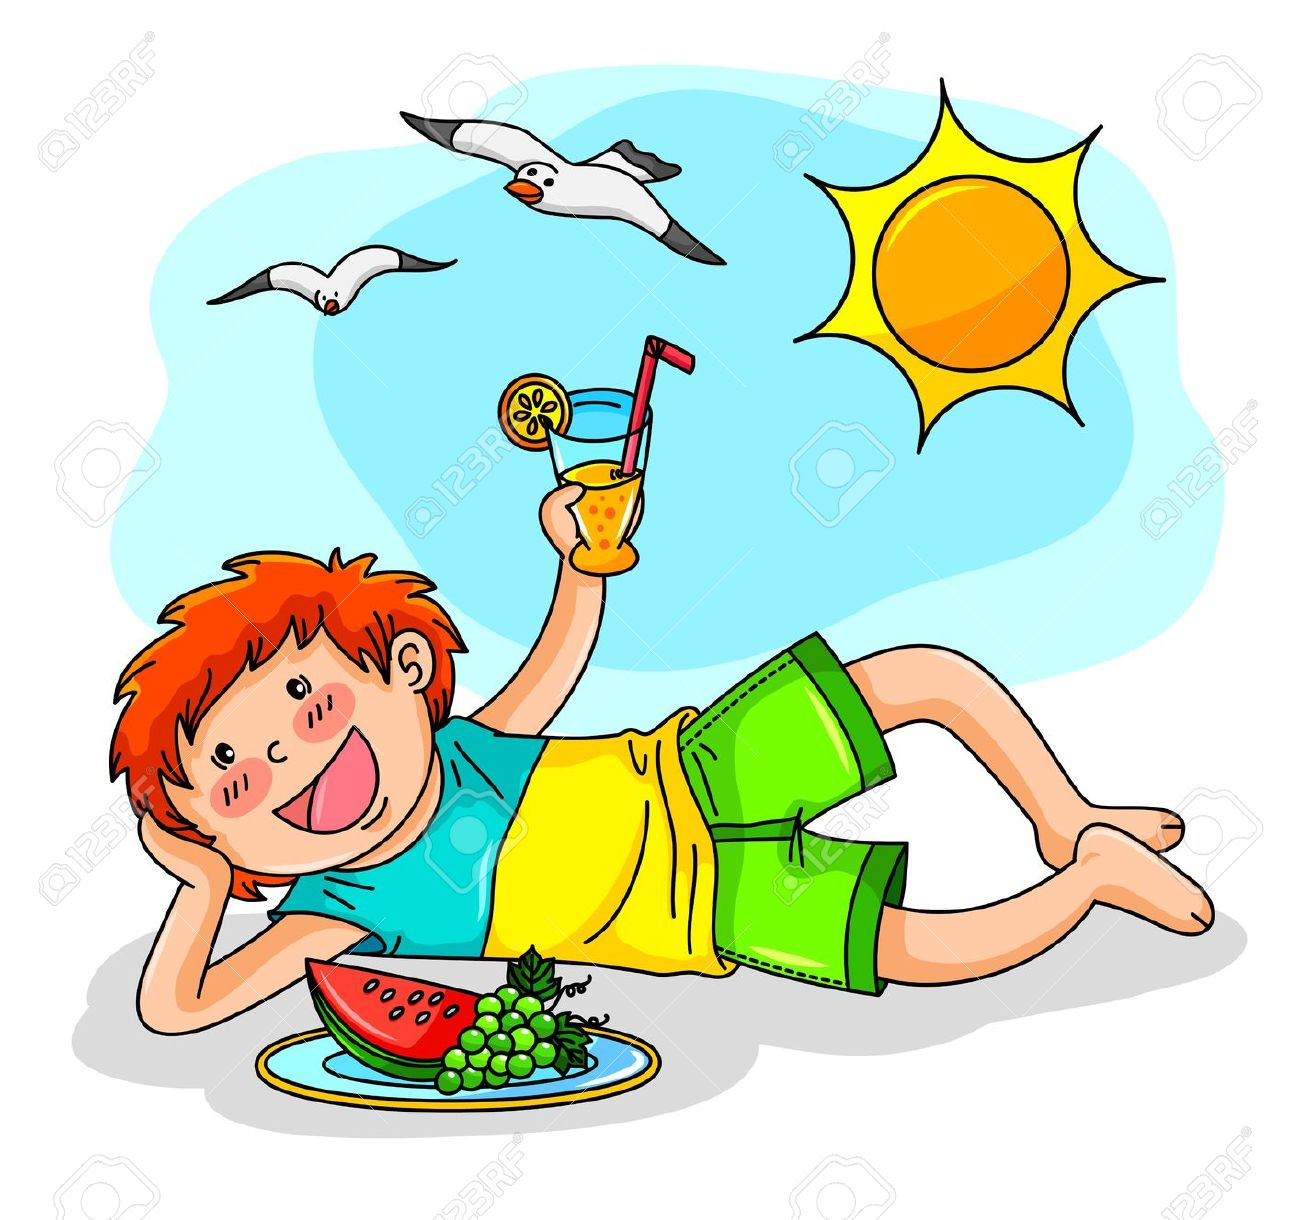 Summer Vacation Clipart Free | Free download on ClipArtMag